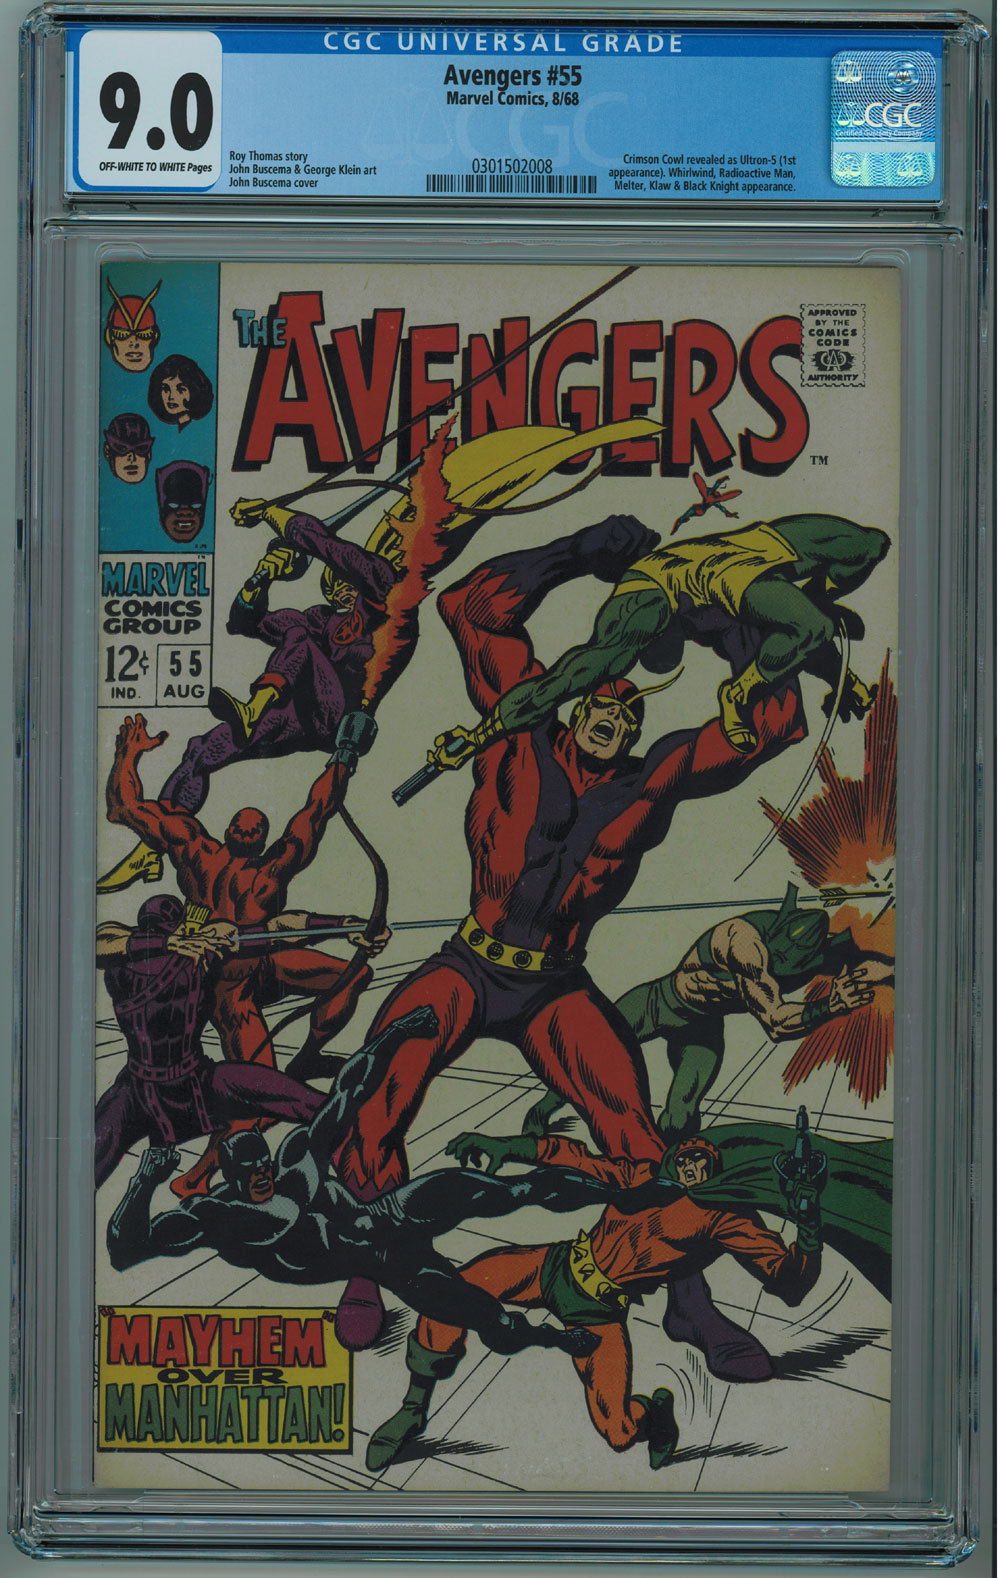 AVENGERS #55 CGC 9.0 HIGH GRADE OFF-WHITE TO WHITE PAGES 1968